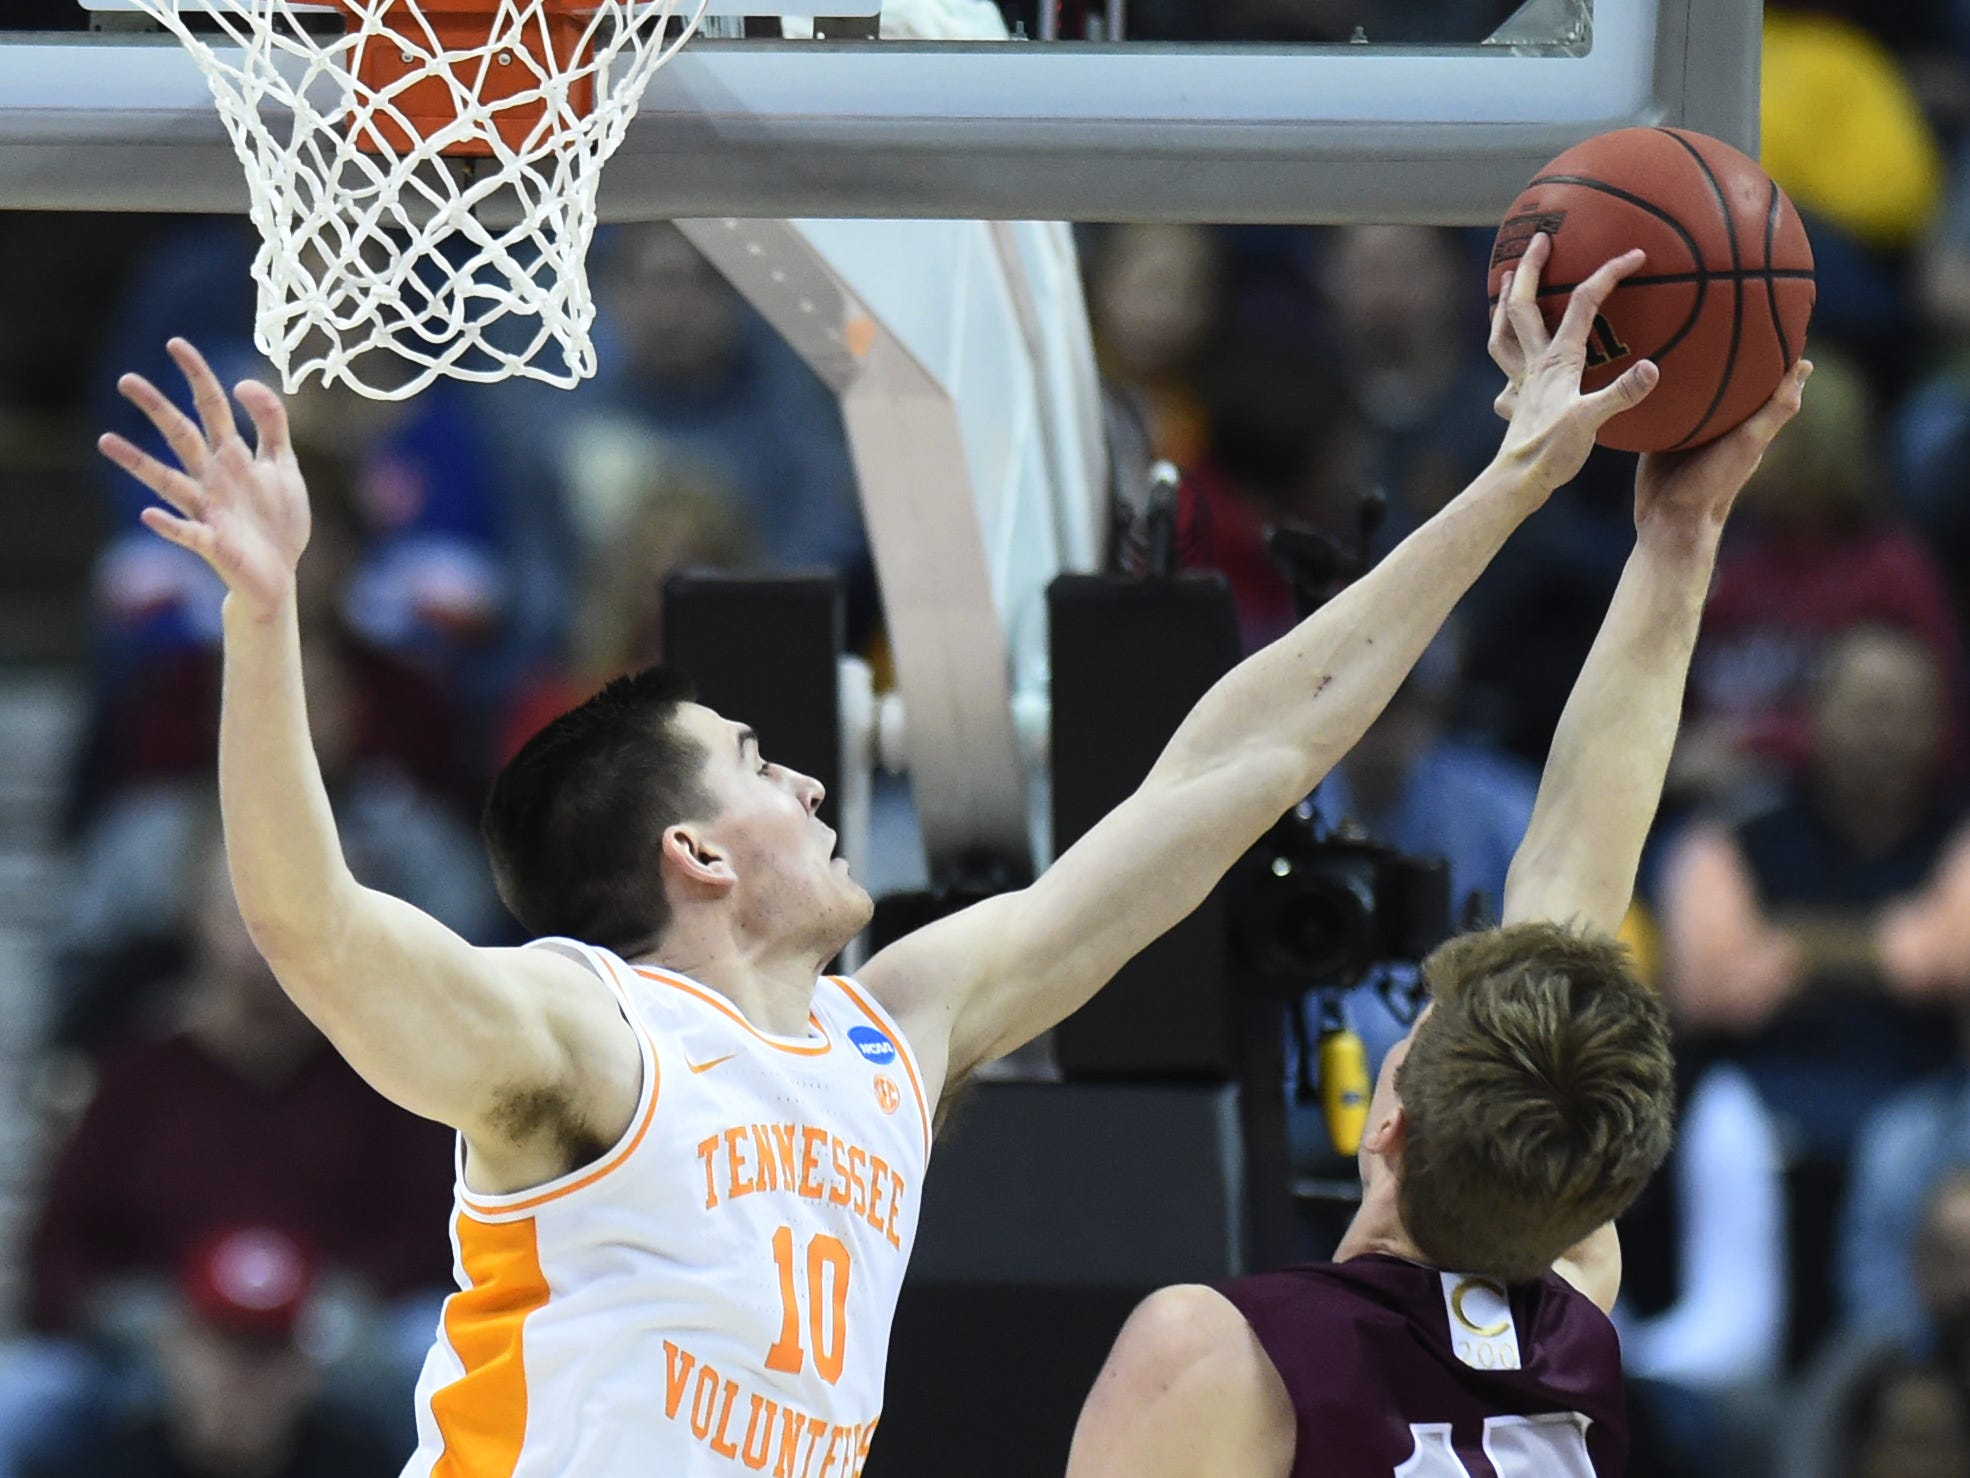 Tennessee forward John Fulkerson (10) defends against Colgate guard Tucker Richardson (15) during their first round game of the NCAA Tournament at Nationwide Arena in Columbus, Ohio, on Friday, March 22, 2019.